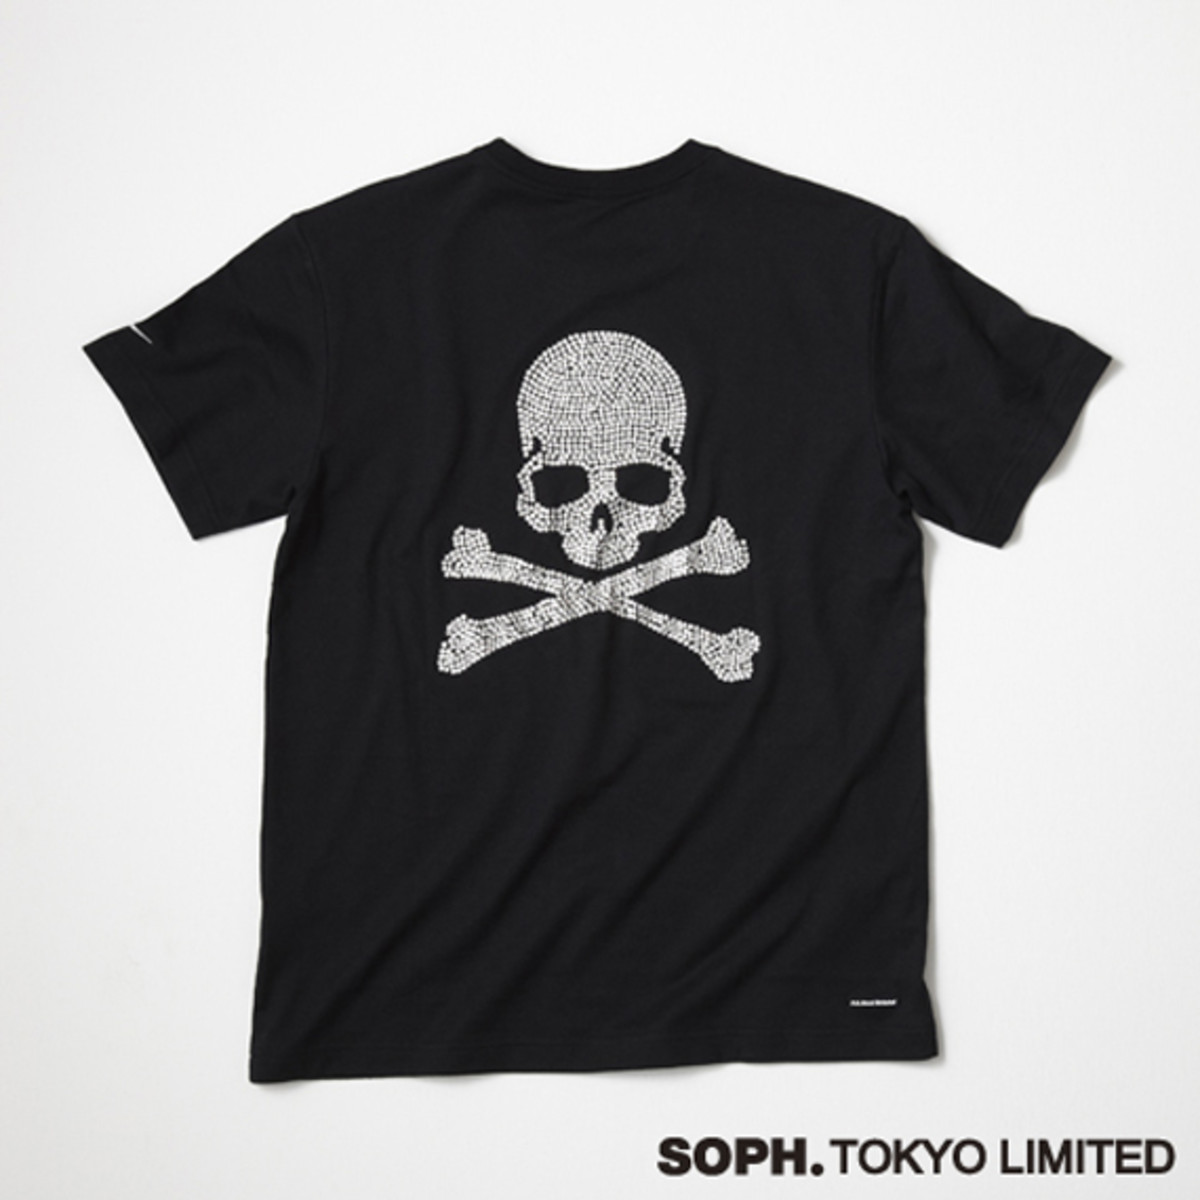 fcrb-mastermind-japan-soph-tokyo-13th-anniversary-collection-06